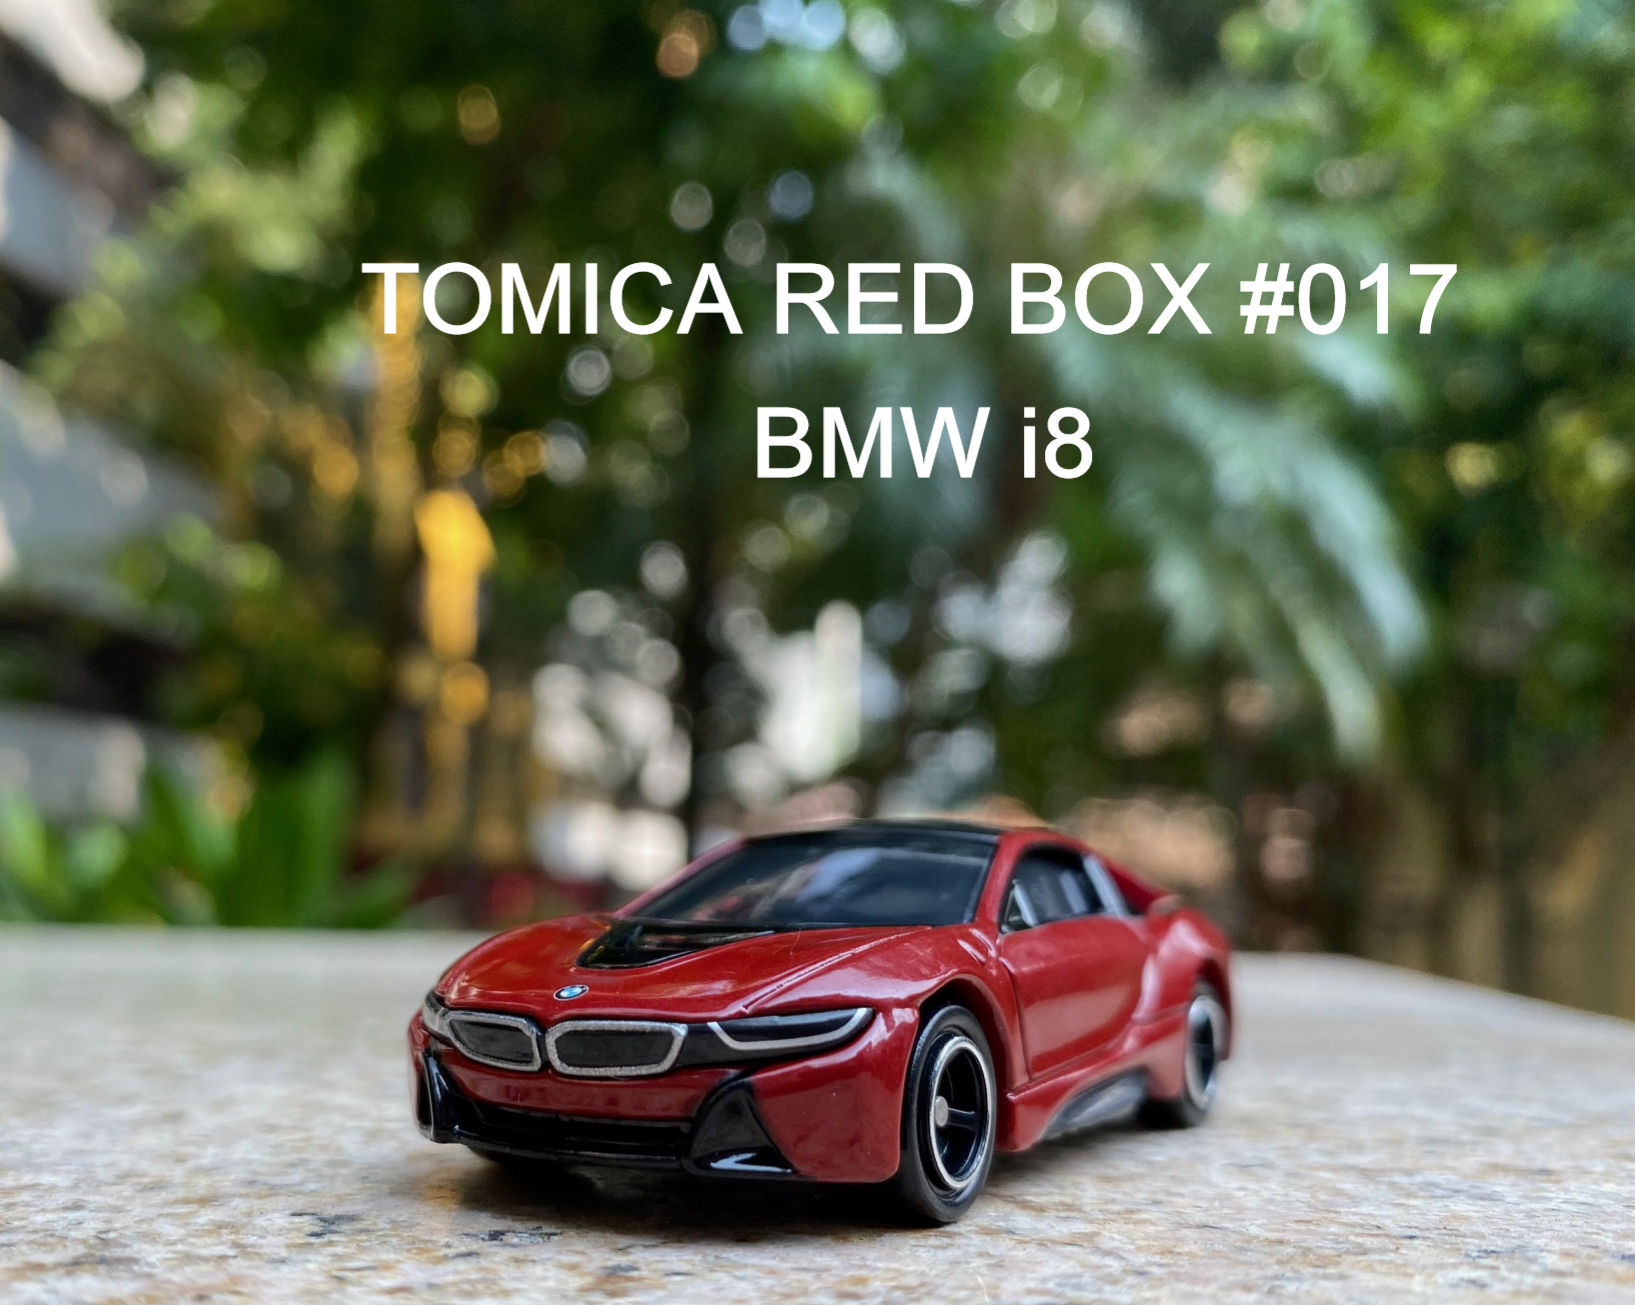 Tomica Red Box Tomica Car Collector